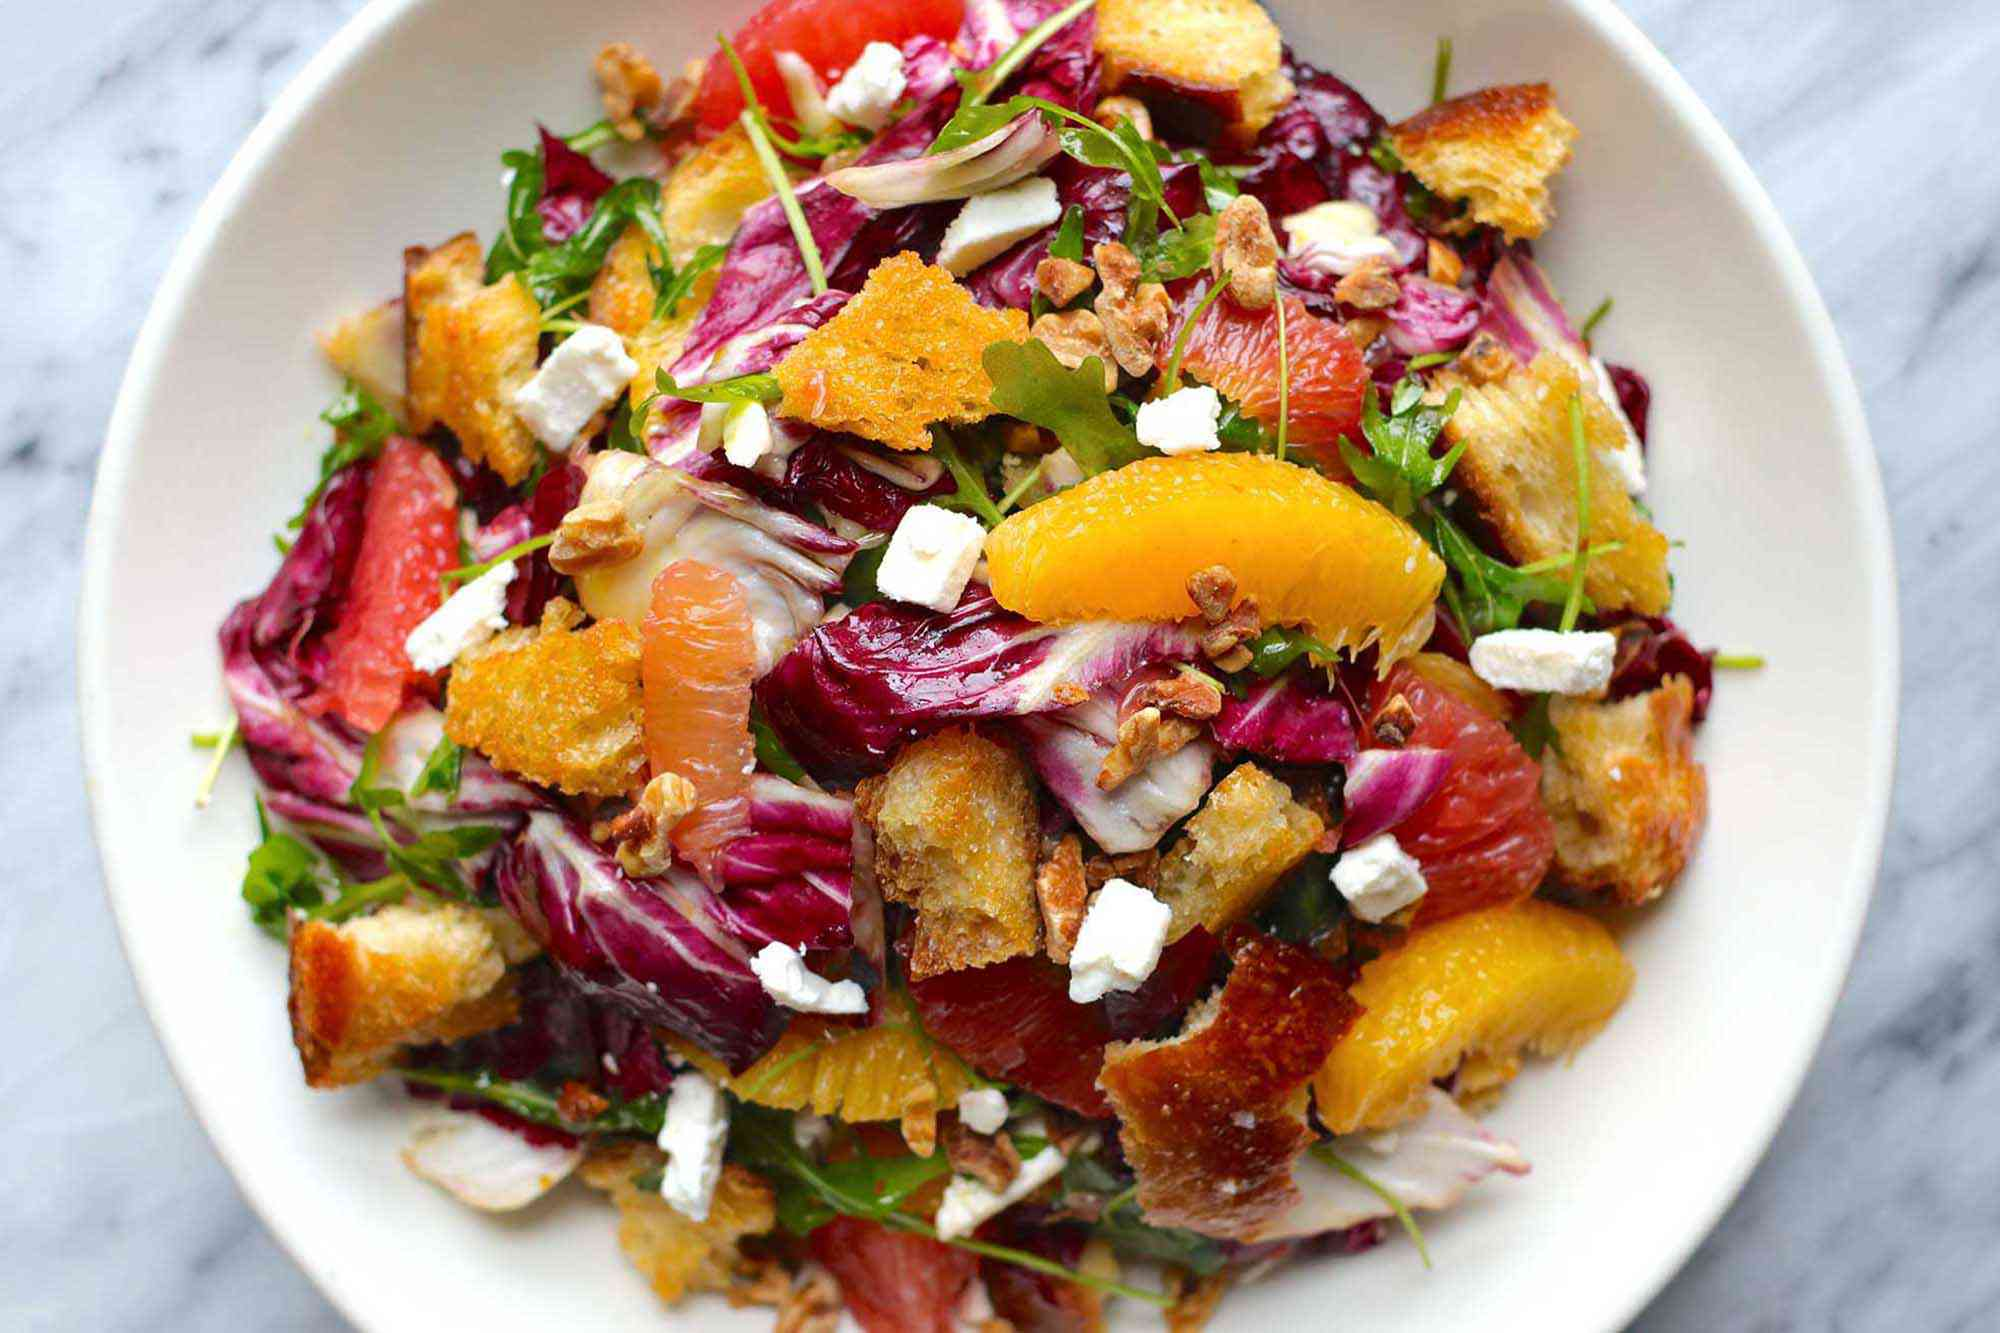 Horizontal overhead view of citrus salad on a white plate. Supremed orange and grapefruit, radicchio, croutons and feta cheese crumbles are visible.